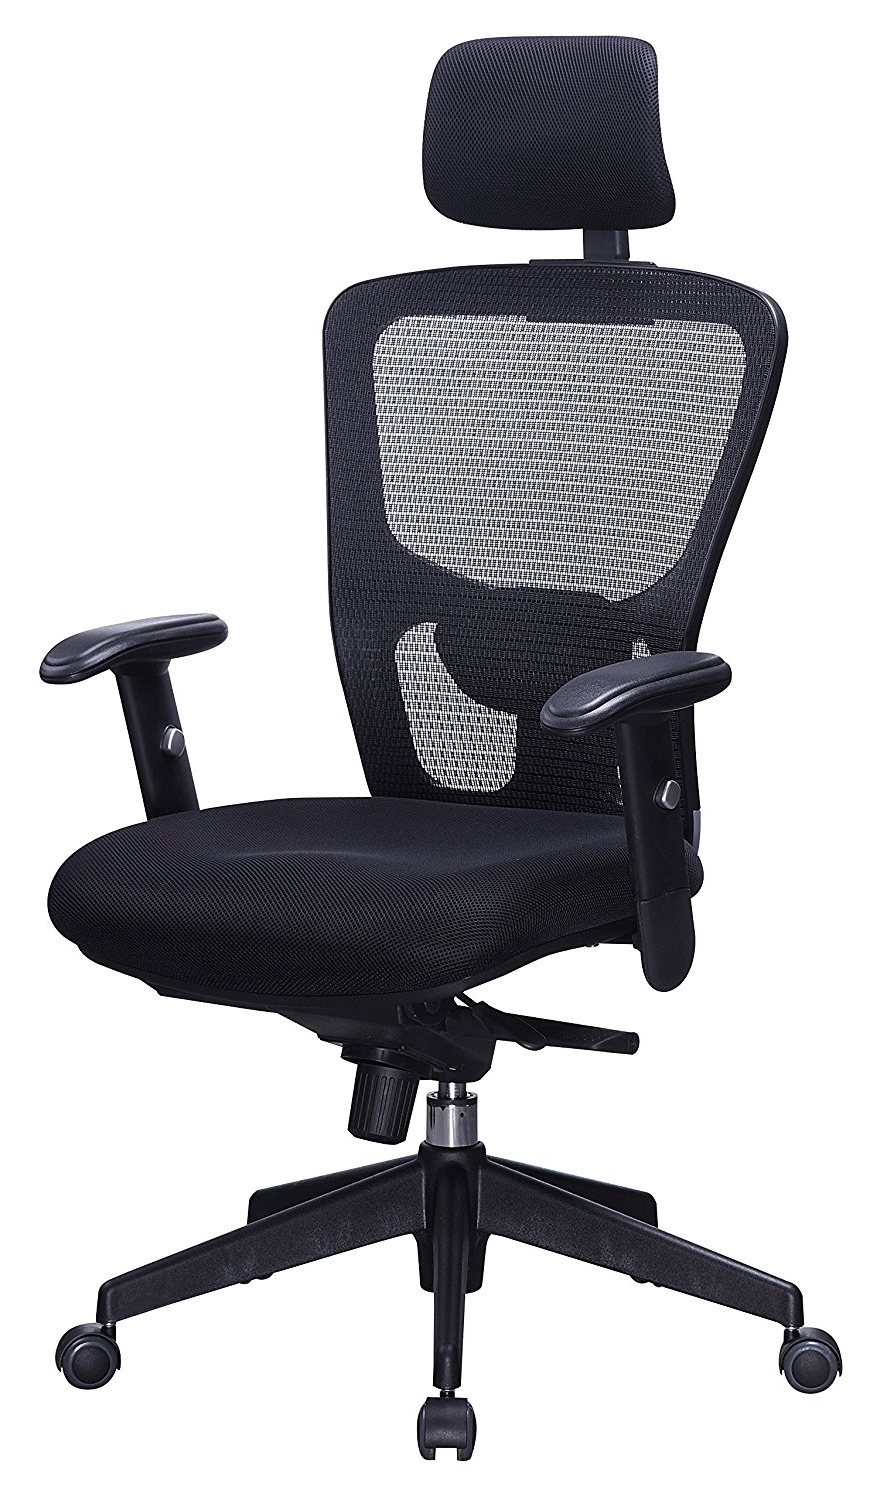 Current 10 Best Ergonomic Chairs For Neck Pain – Think Home Office Pertaining To Executive Office Chairs With Back Support (View 11 of 20)